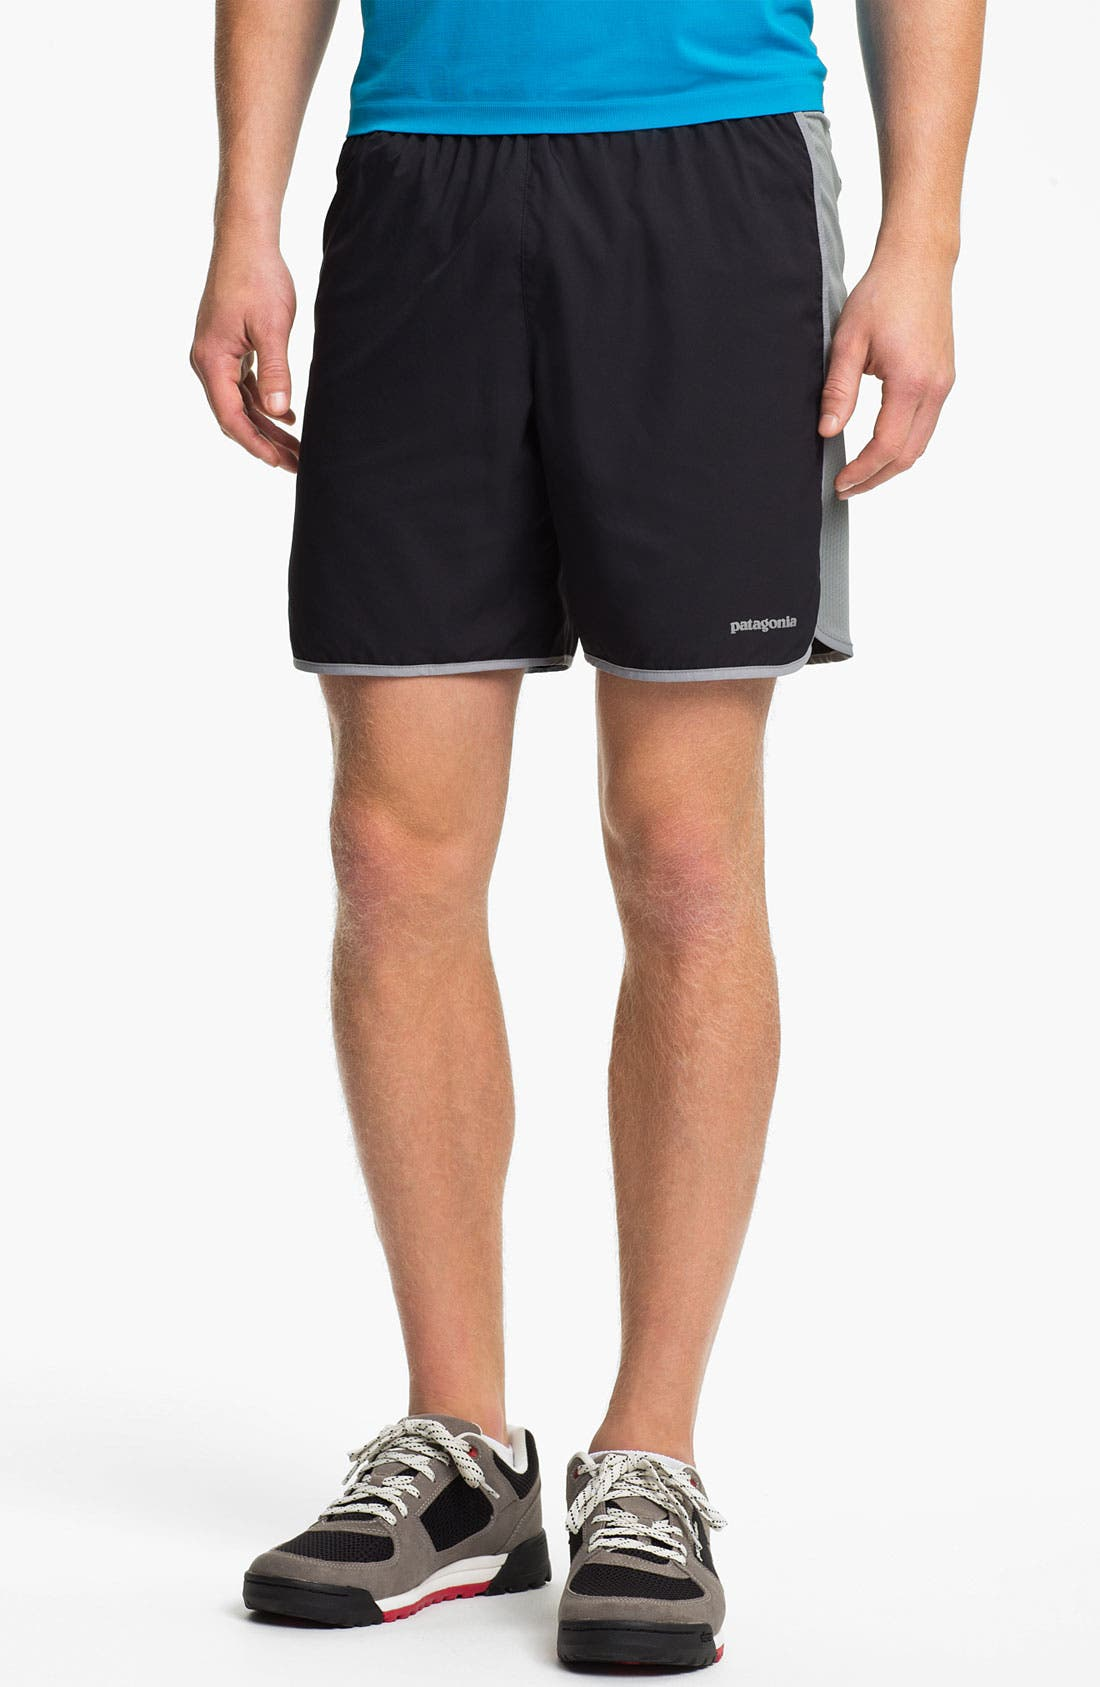 Alternate Image 1 Selected - Patagonia 'Strider' Shorts (Online Only)